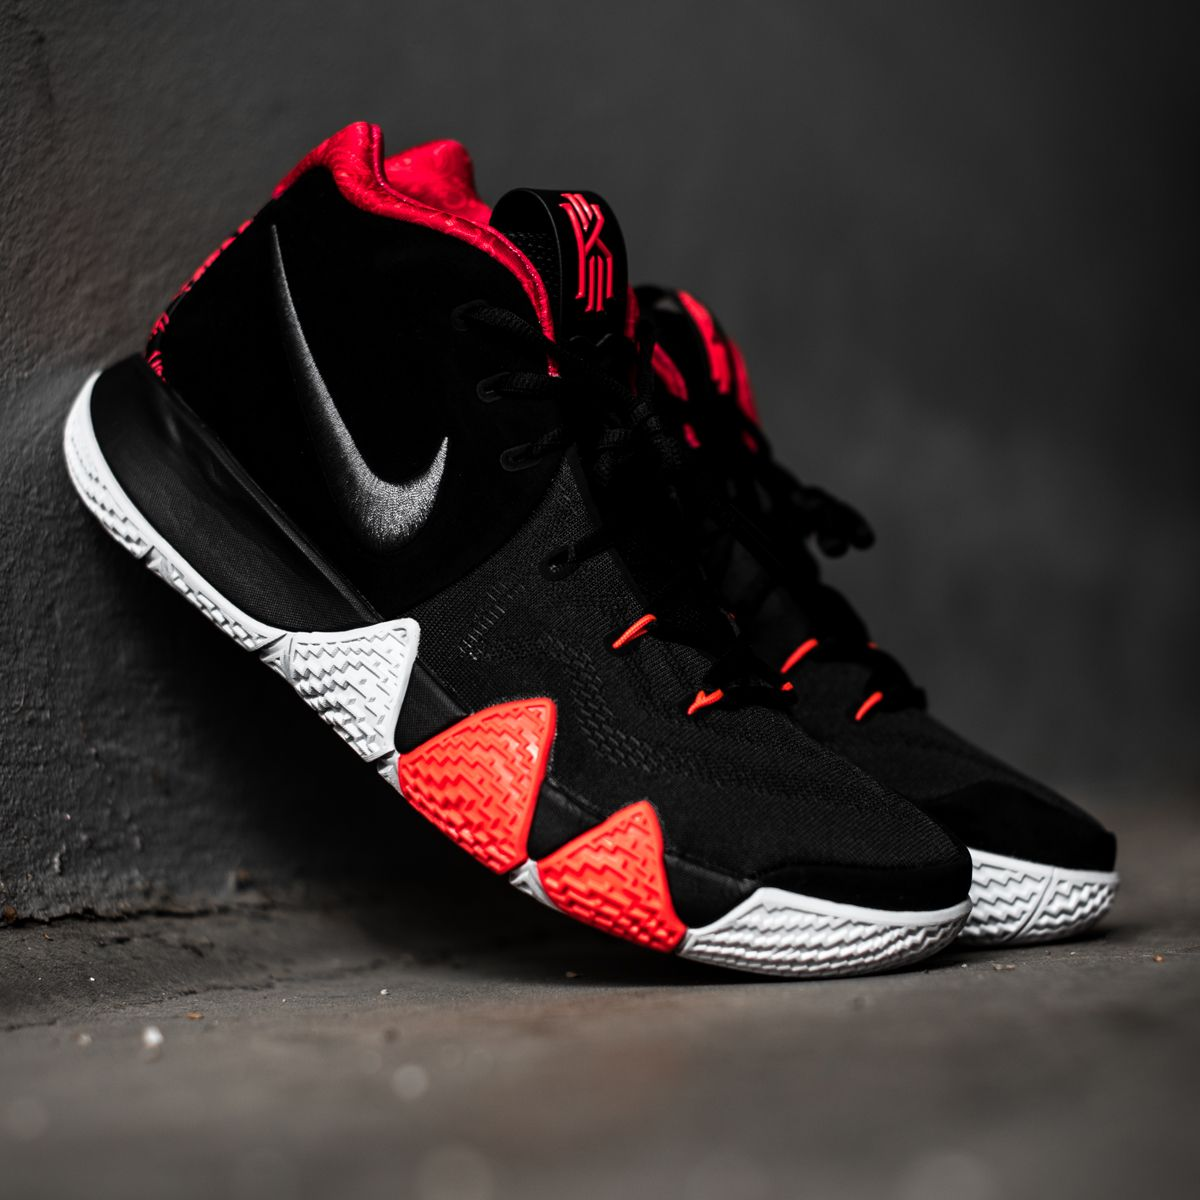 8e3bd2a497f This Nike Kyrie 4 colorway is inspired by Irving s incredible 41-point  performance in Game 5 of the NBA Finals